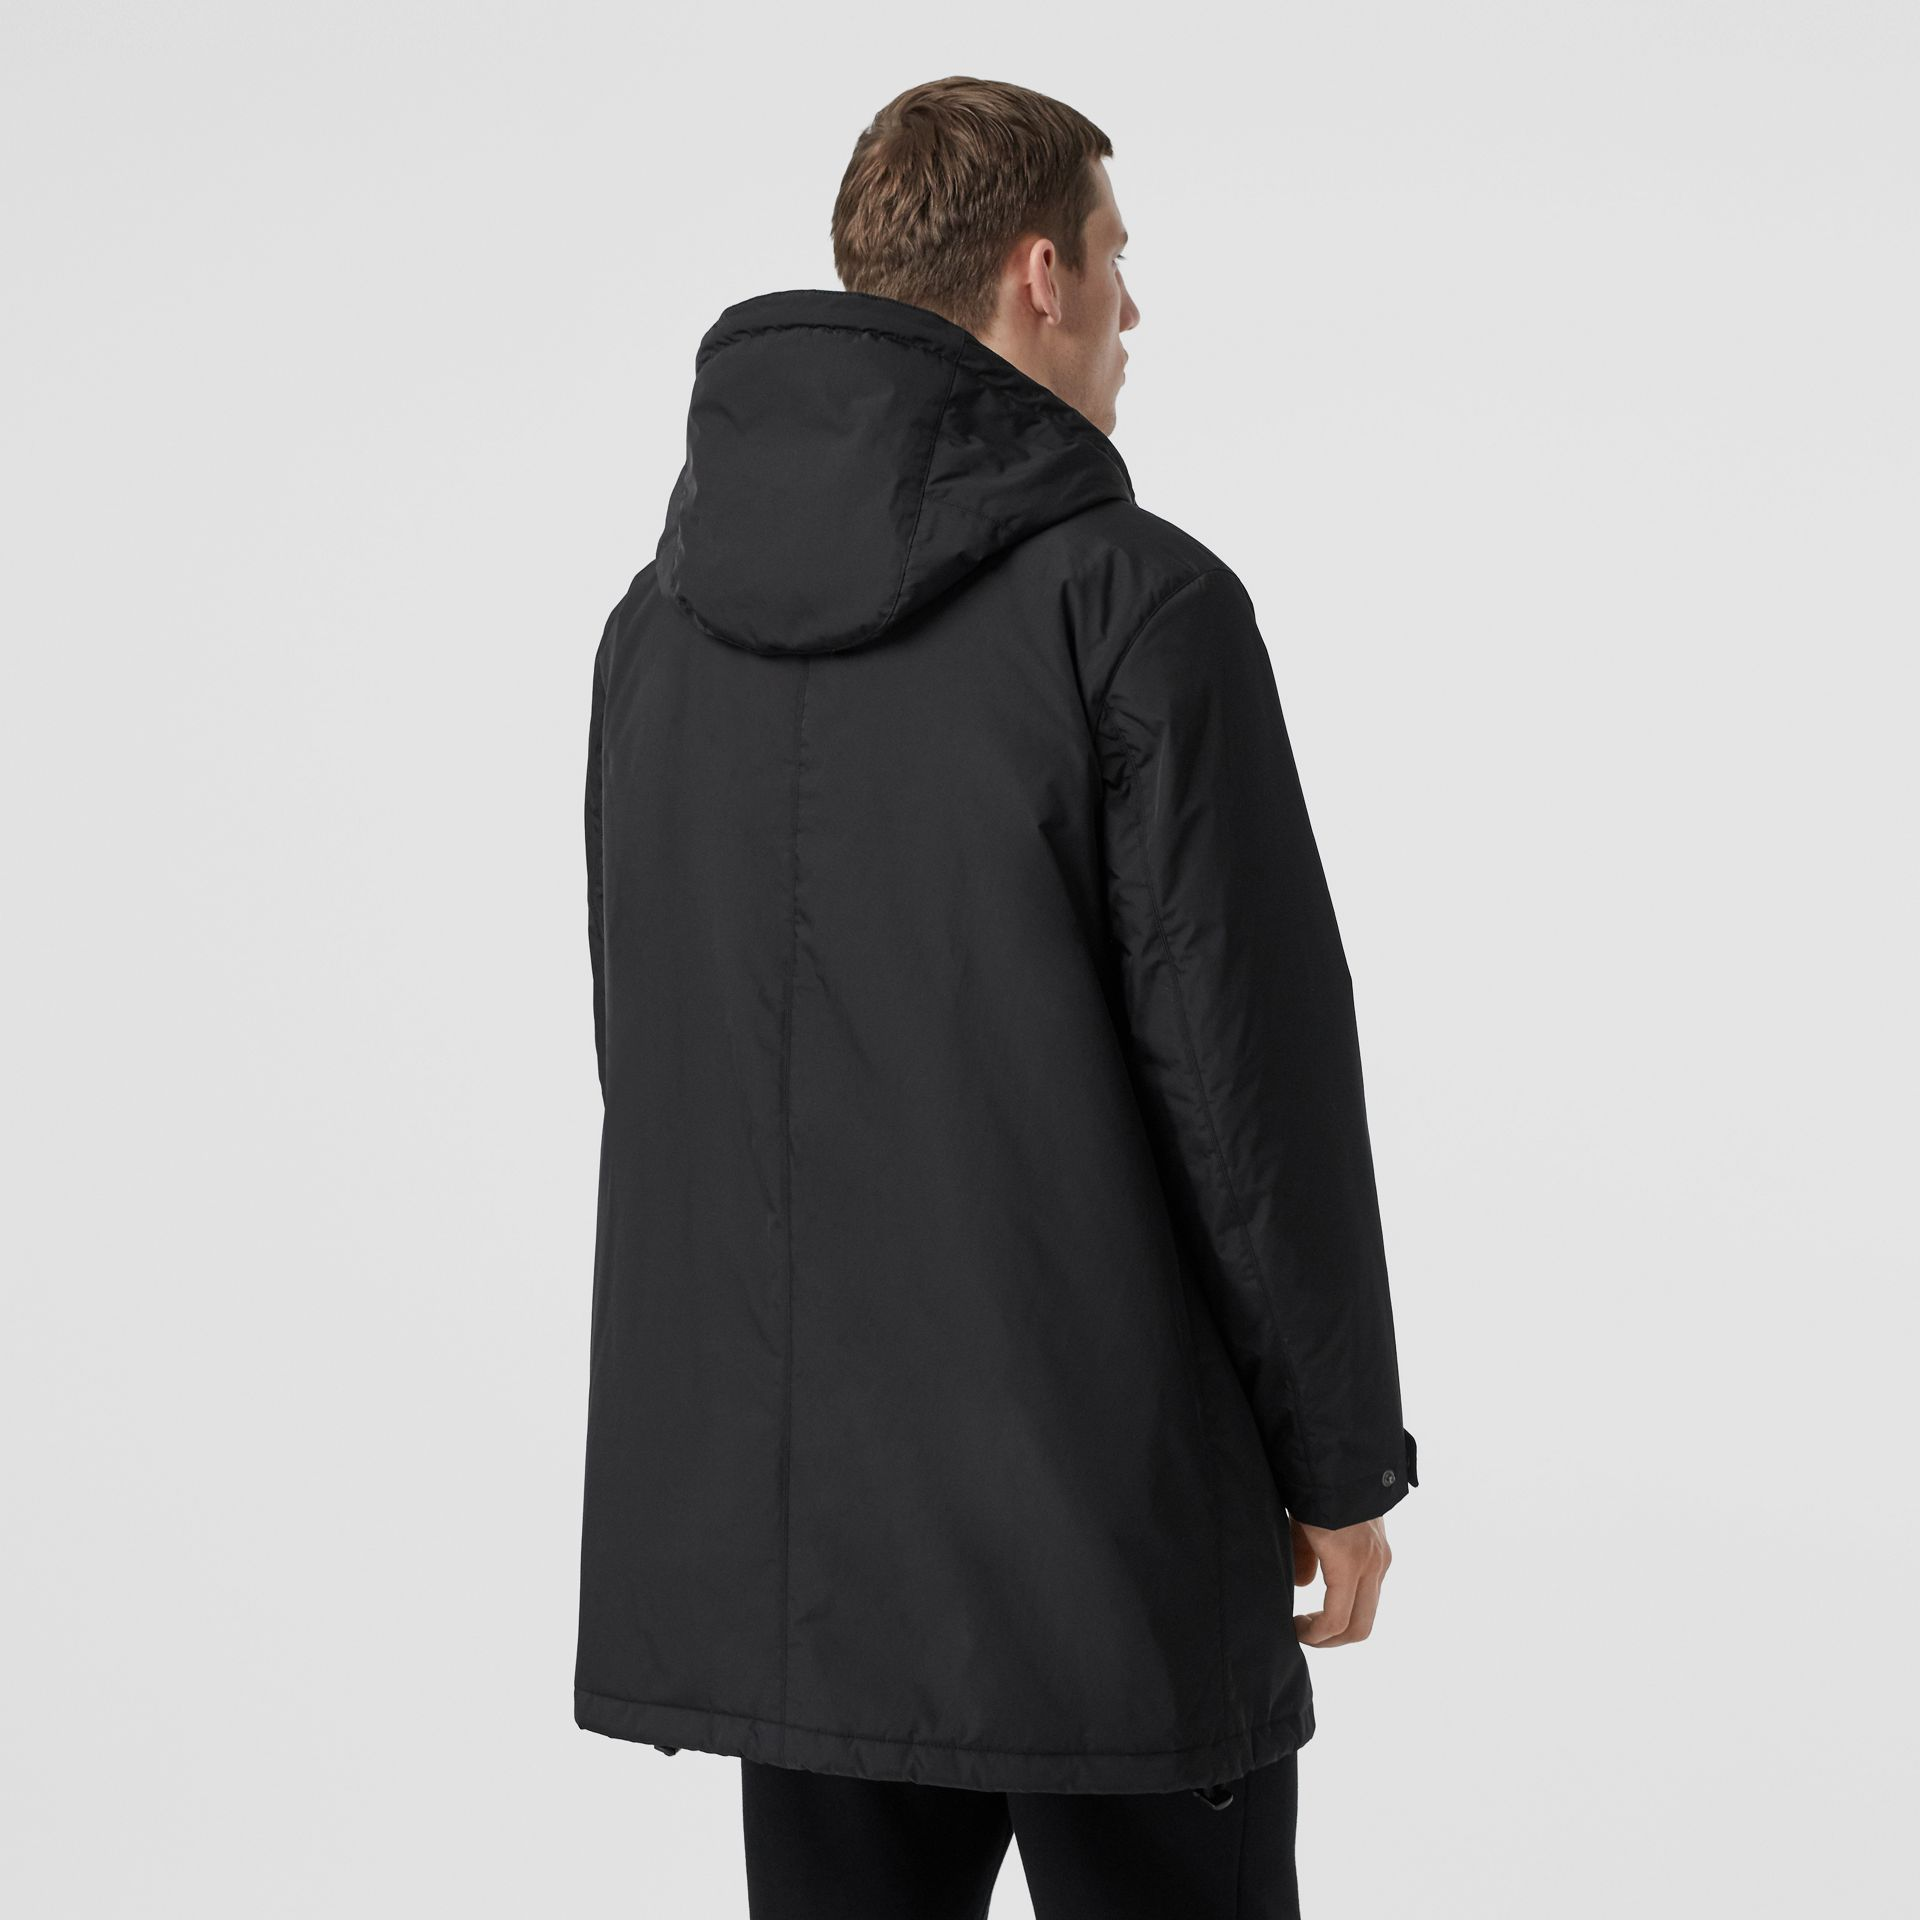 Monogram Motif Nylon Twill Hooded Coat in Black - Men | Burberry Canada - gallery image 2